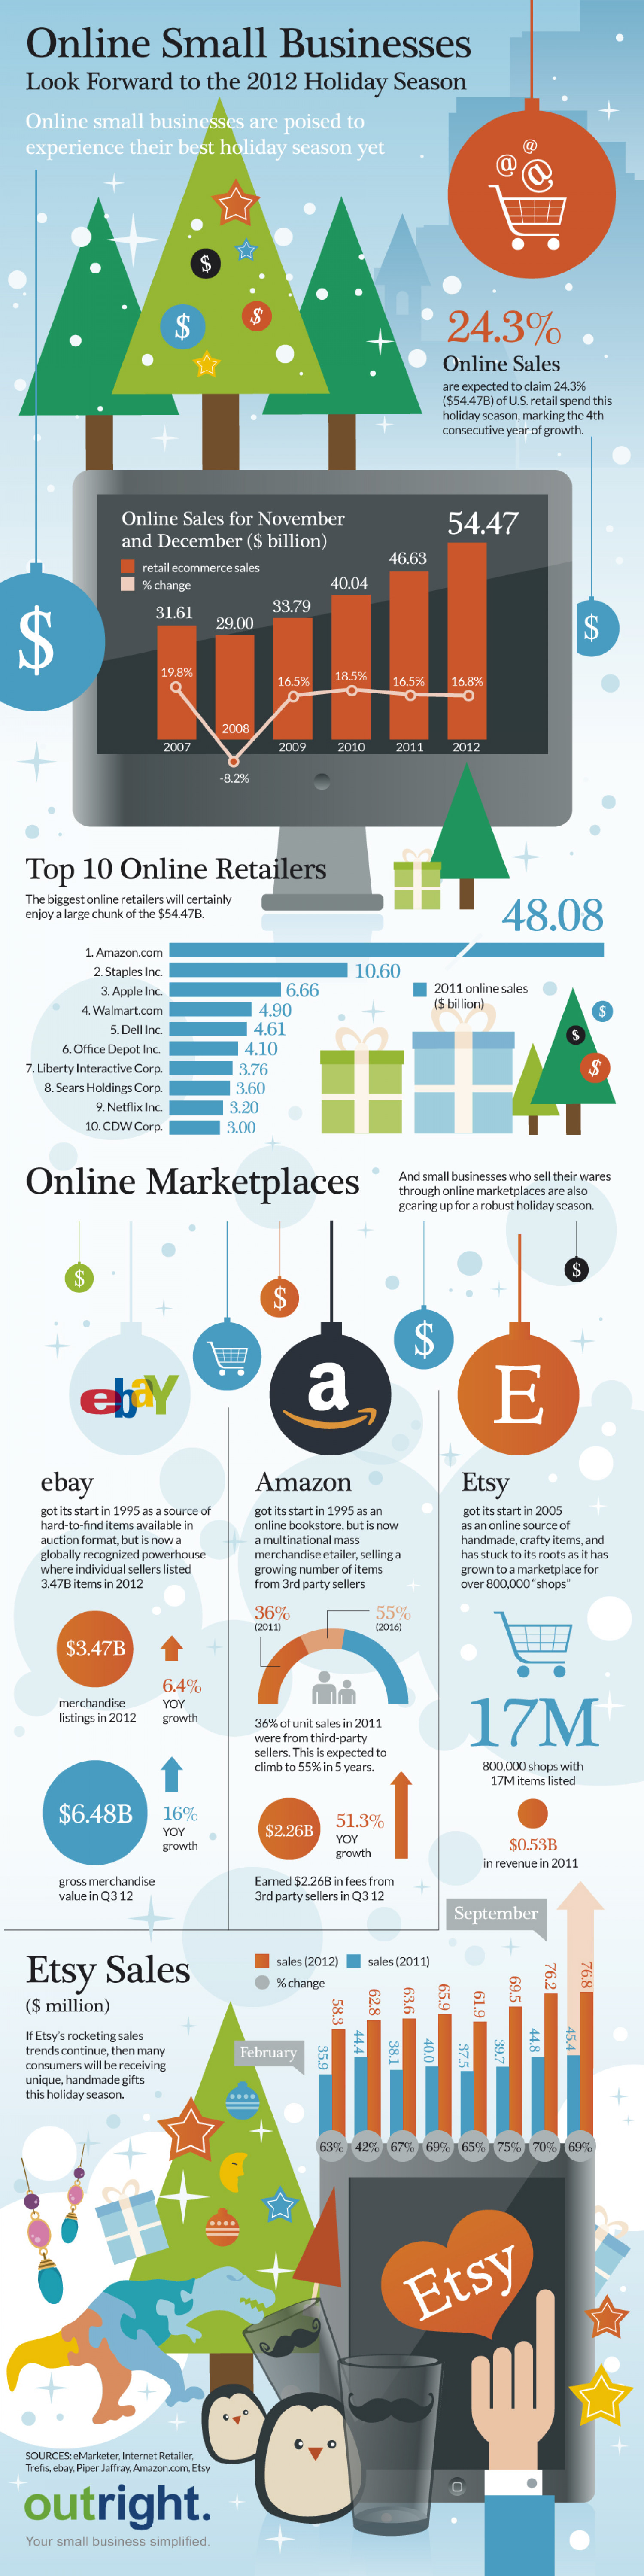 Online Small Businesses Look Forward to the 2012 Holiday Season Infographic